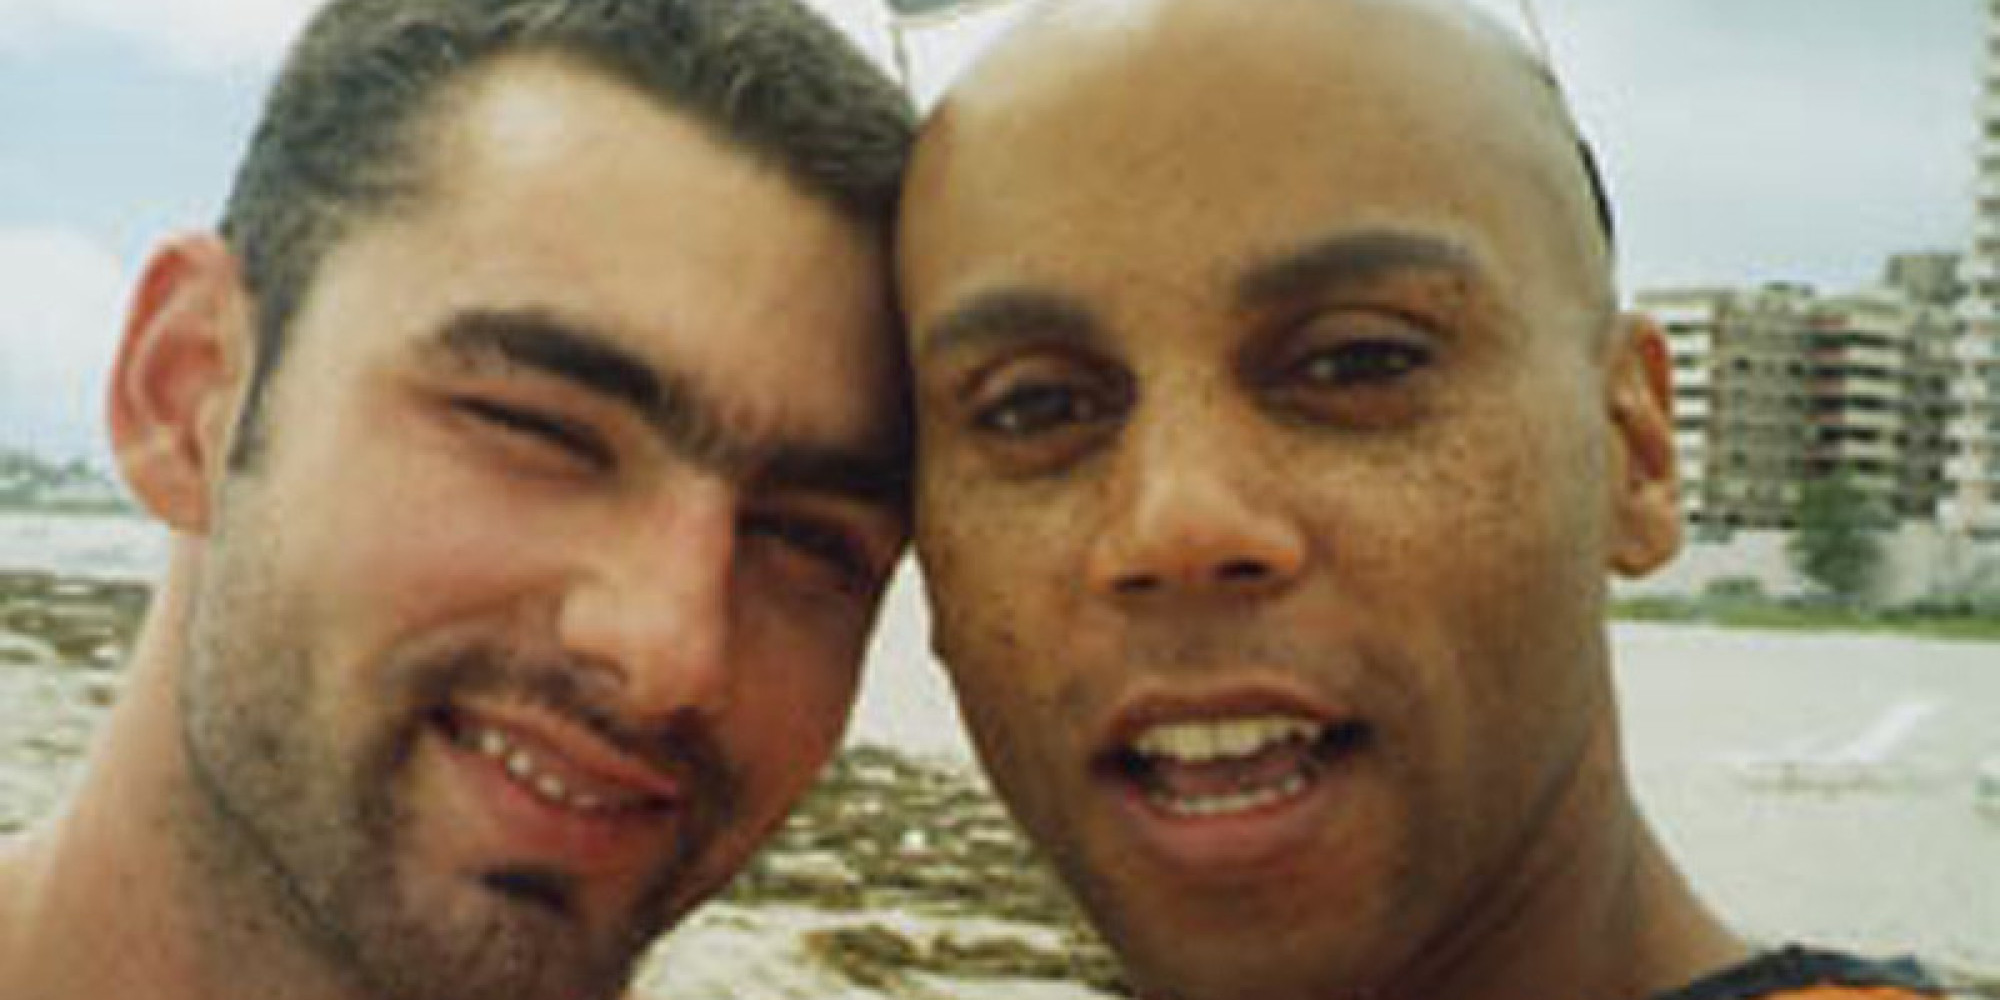 RuPaul and George LeBar